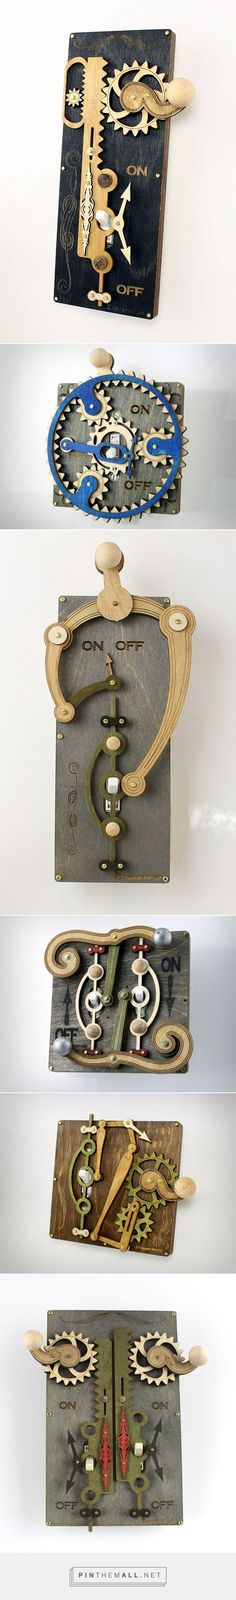 These Overly Complicated Light Switch Covers From Green Tree Jewelry are Awesome «TwistedSifter.